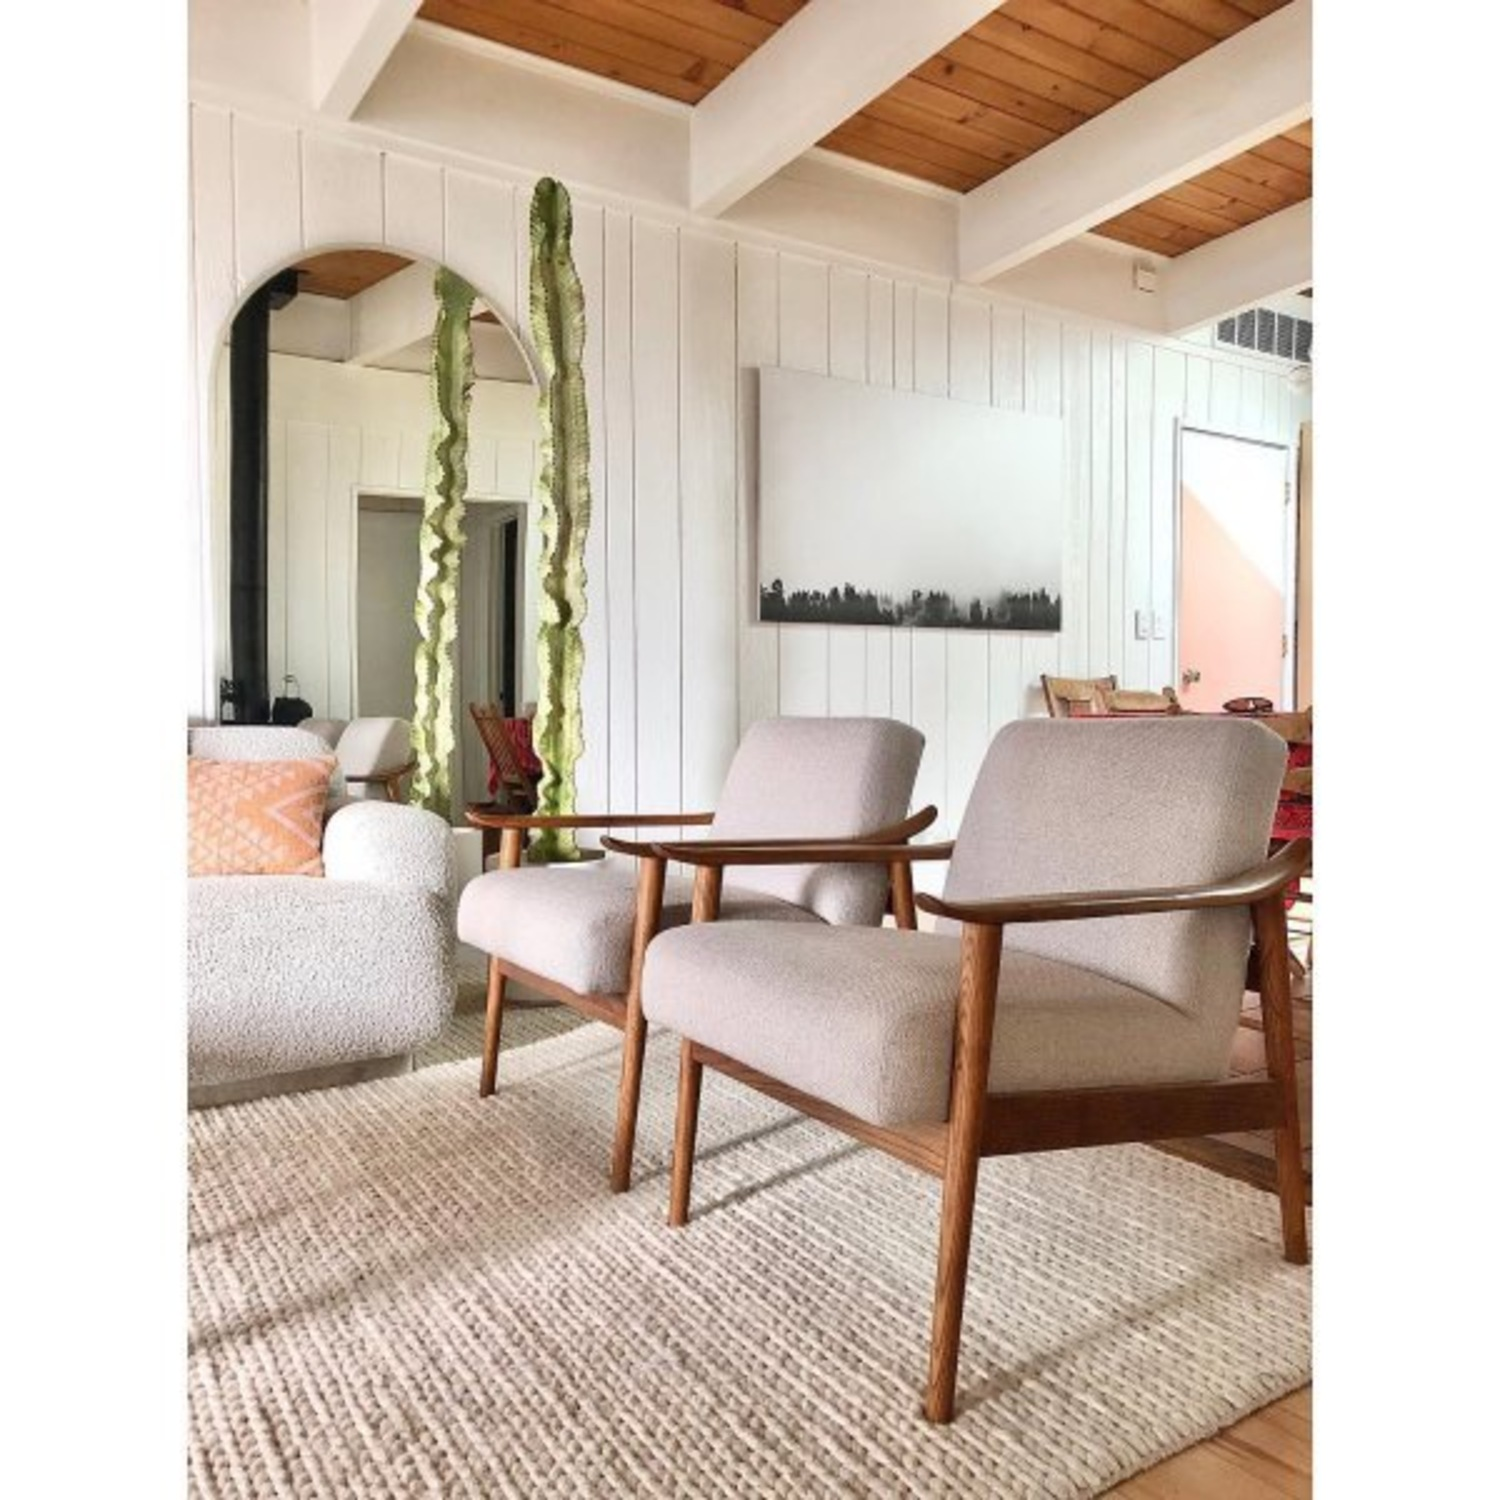 West Elm Mid-Century Upholstered Chair - image-2